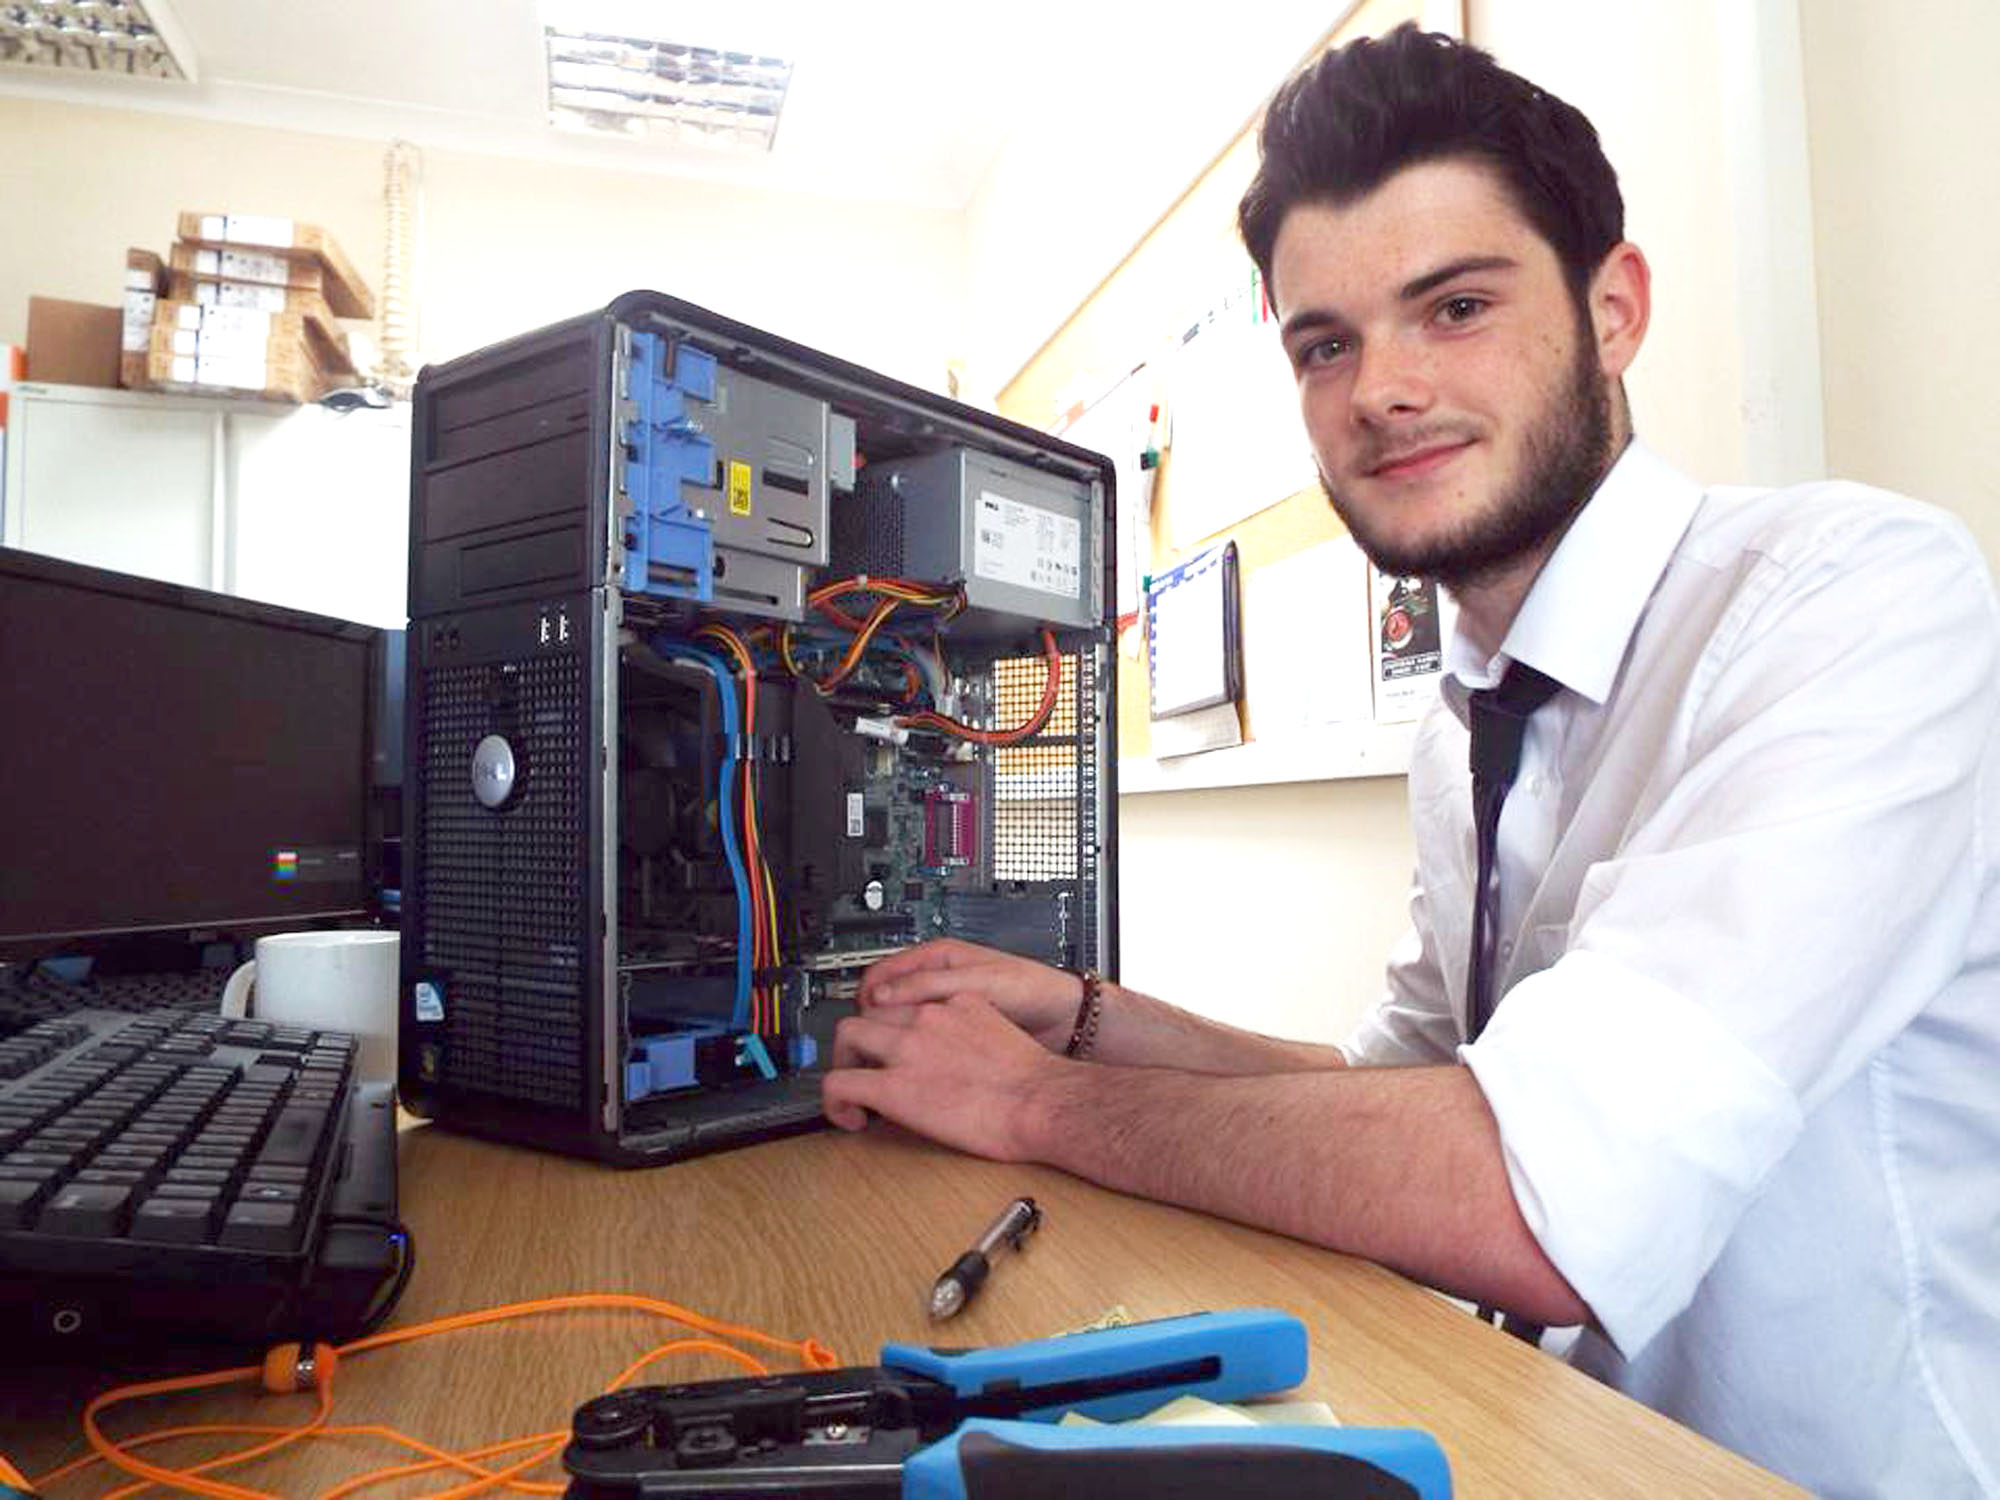 Baltic Offer Tech Industry Gold Apprenticeships